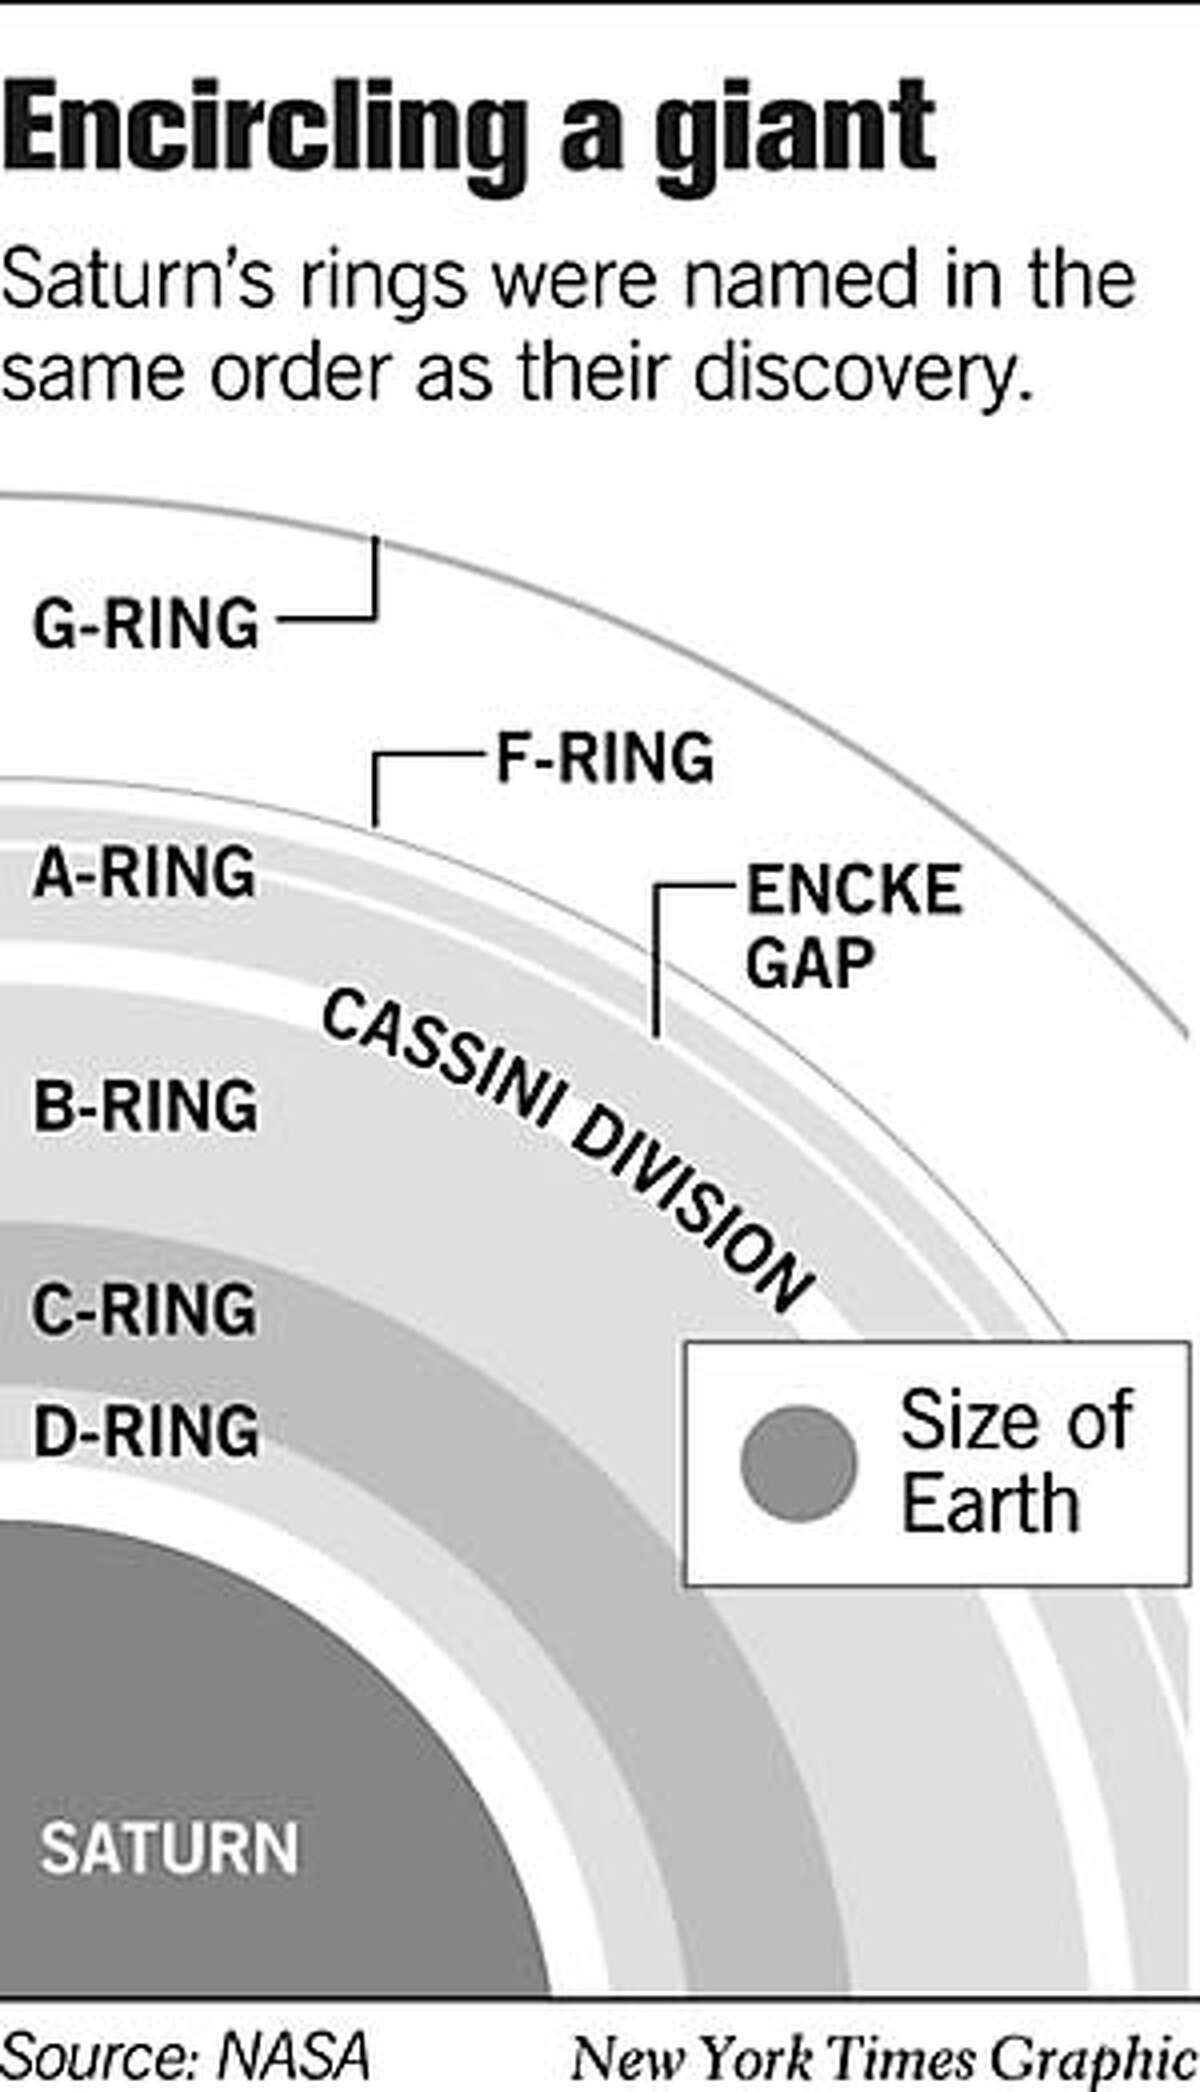 Encircling a Giant. New York Times Graphic